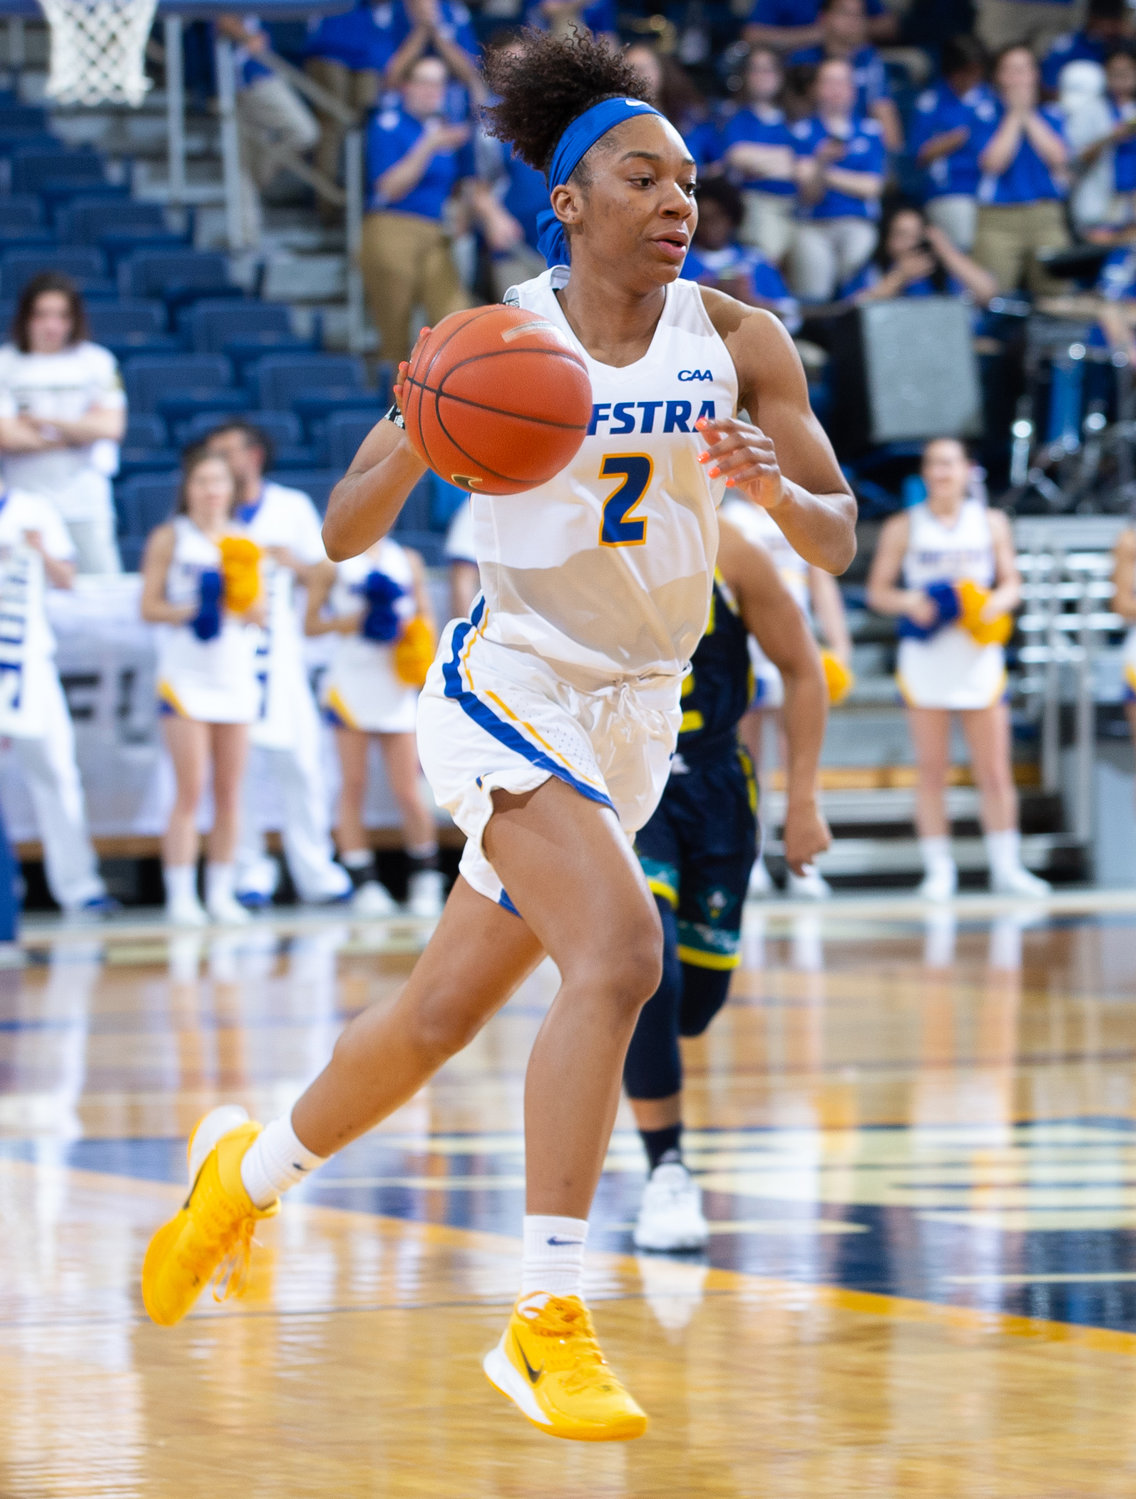 Junior guard JaKayla Brown made a dozen starts for the Pride last season and averaged 6 points per game.